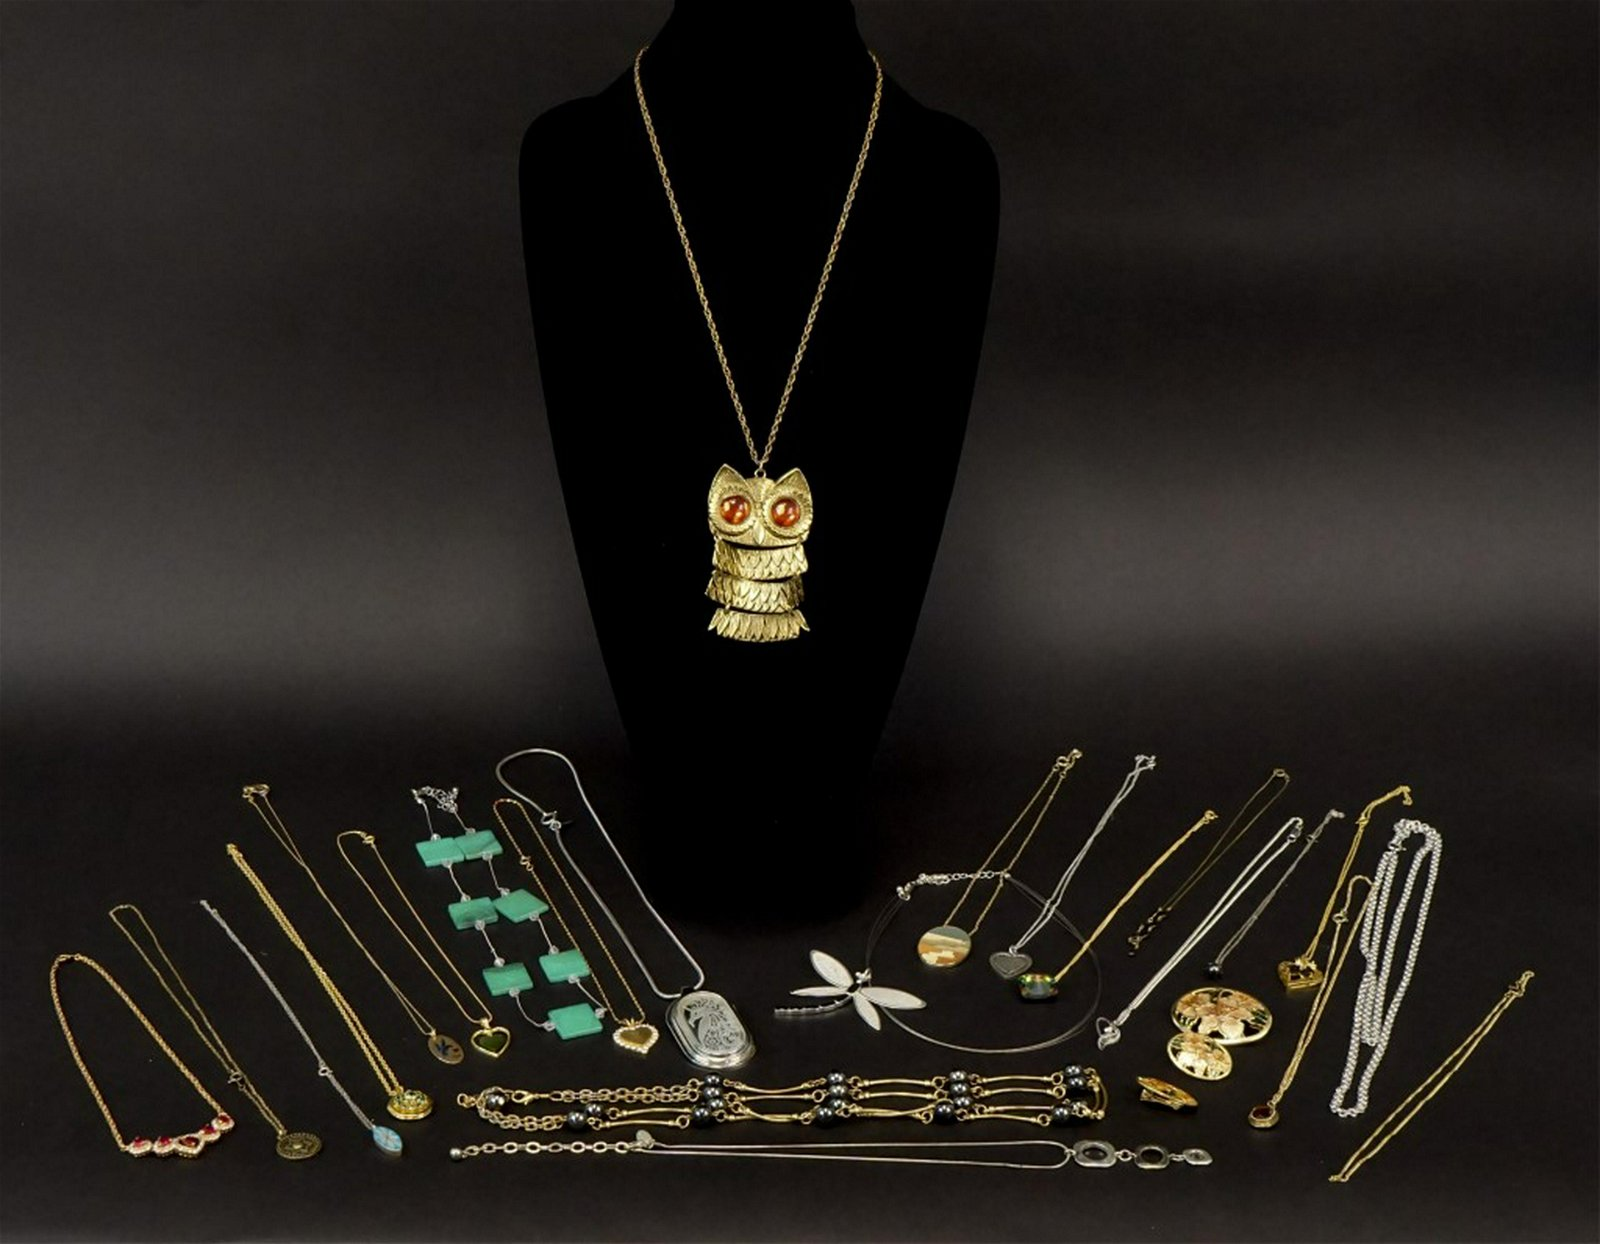 Estate Jewelry - 23 Assorted Necklaces & 3 Pins